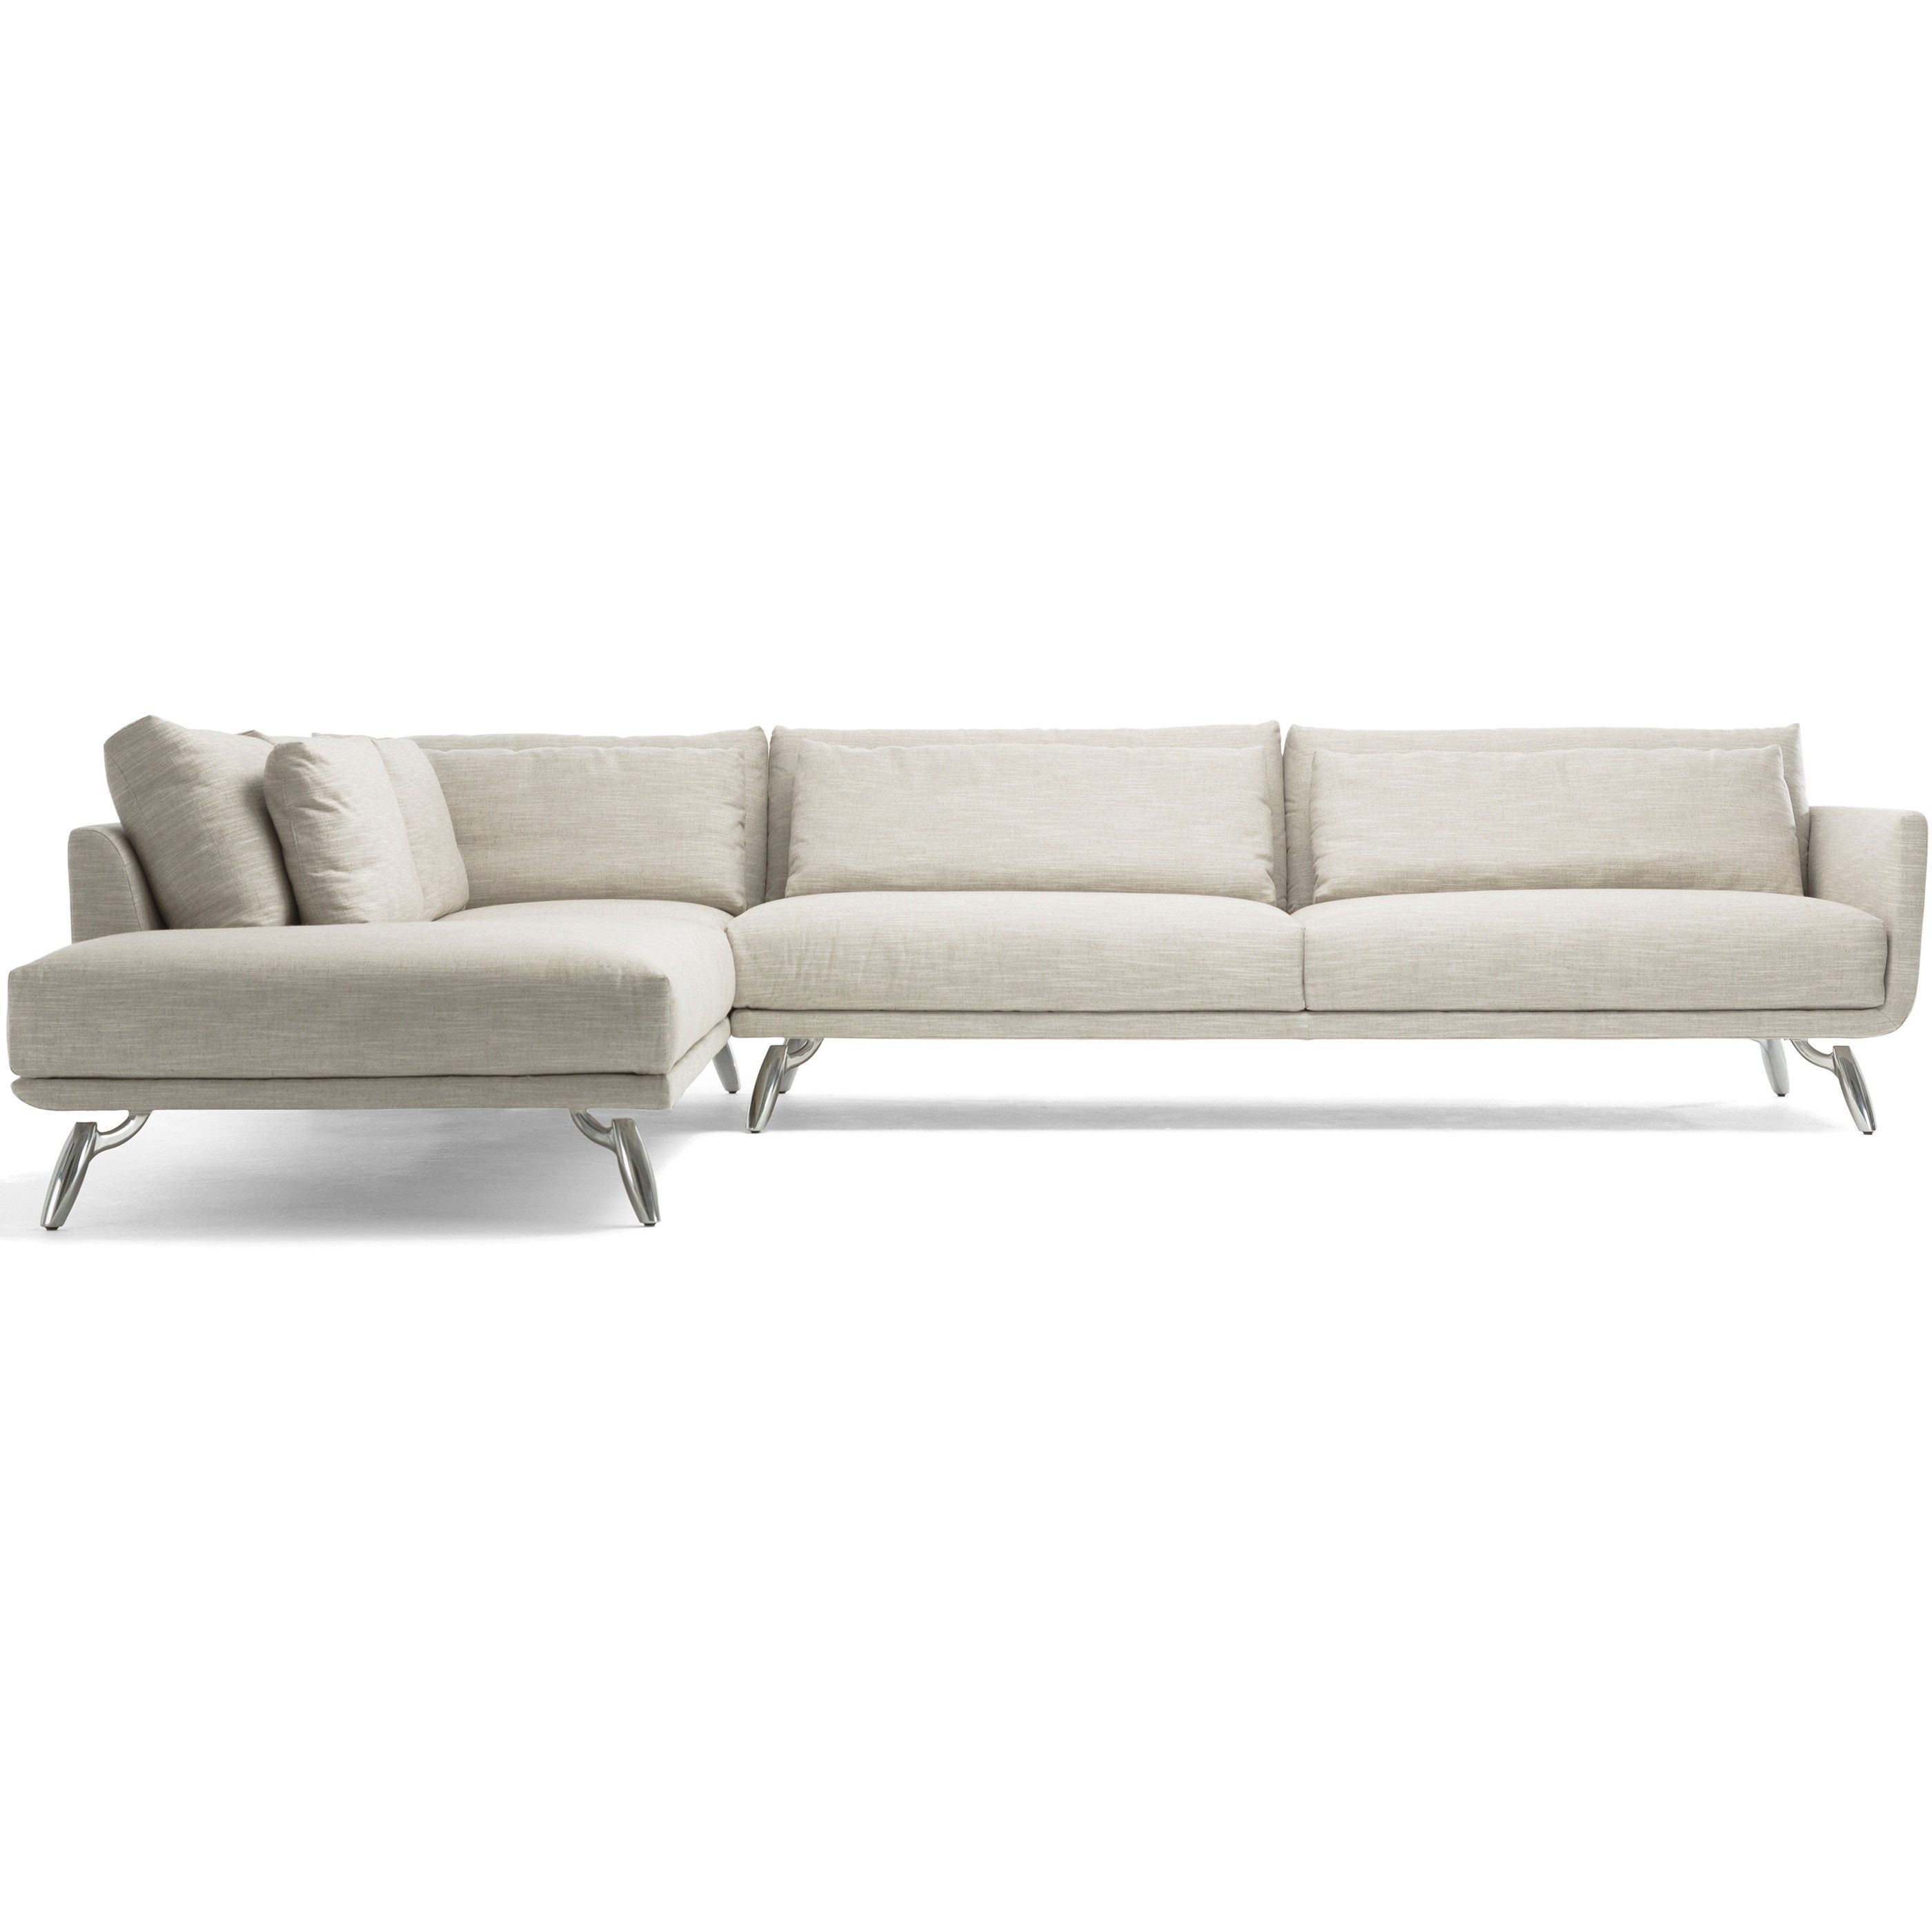 Design Bank 3 Zits.Design On Stock Byen Lounge Bank 3 Zits 1 Arm Dormeuse Couches